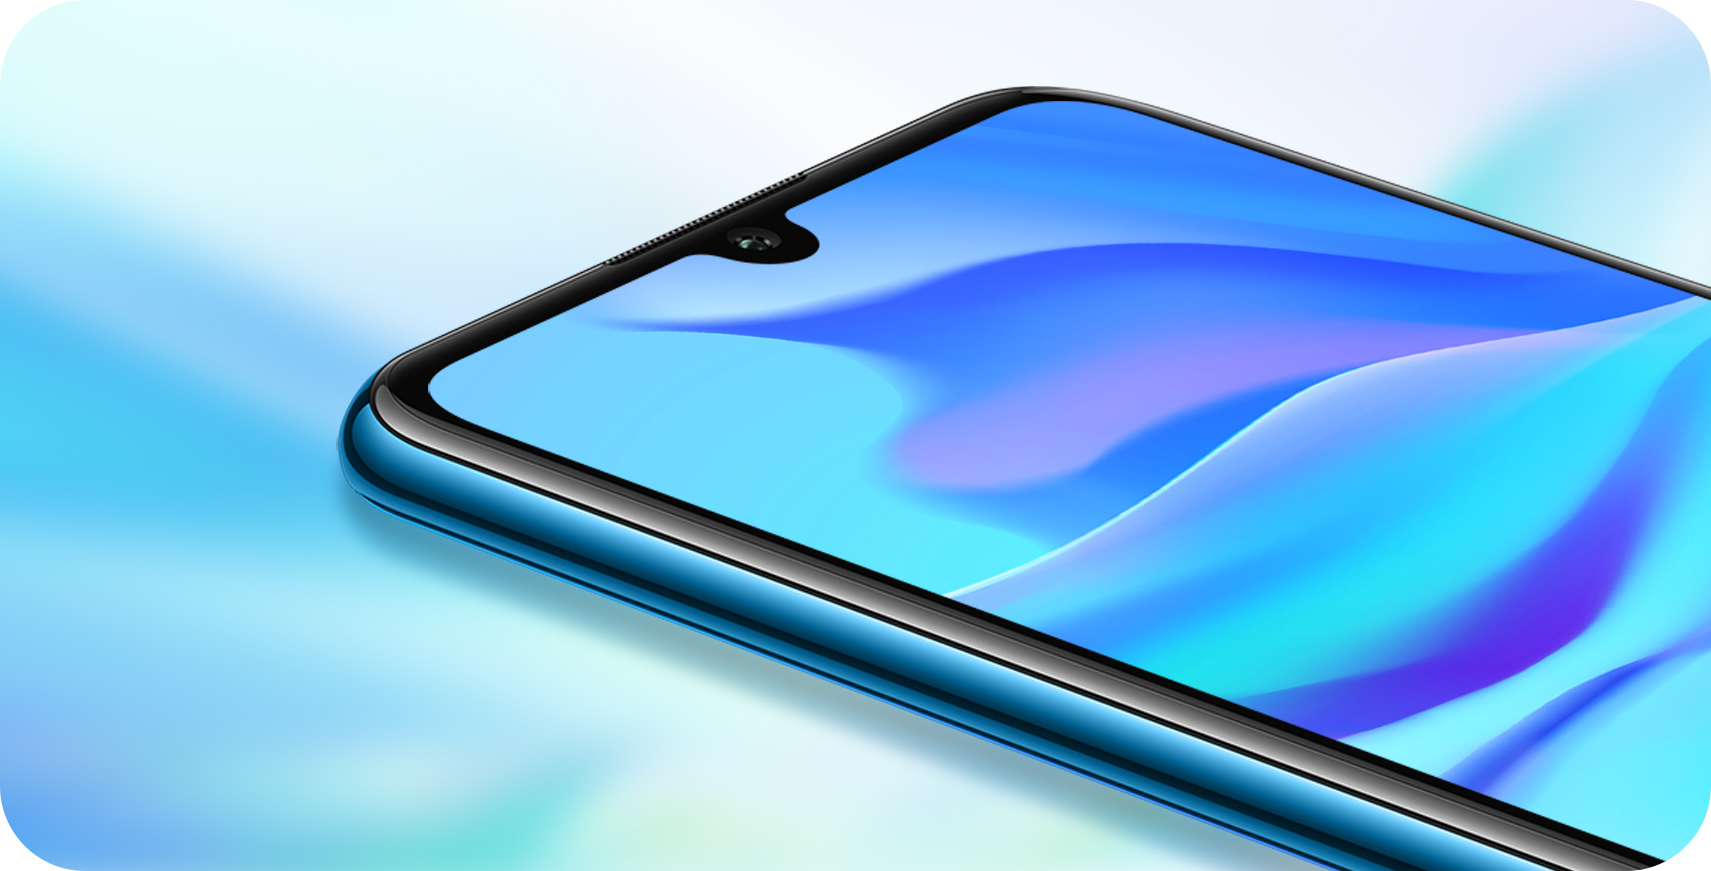 Huawei-Nova-4e-Dewdrop-Display_bg